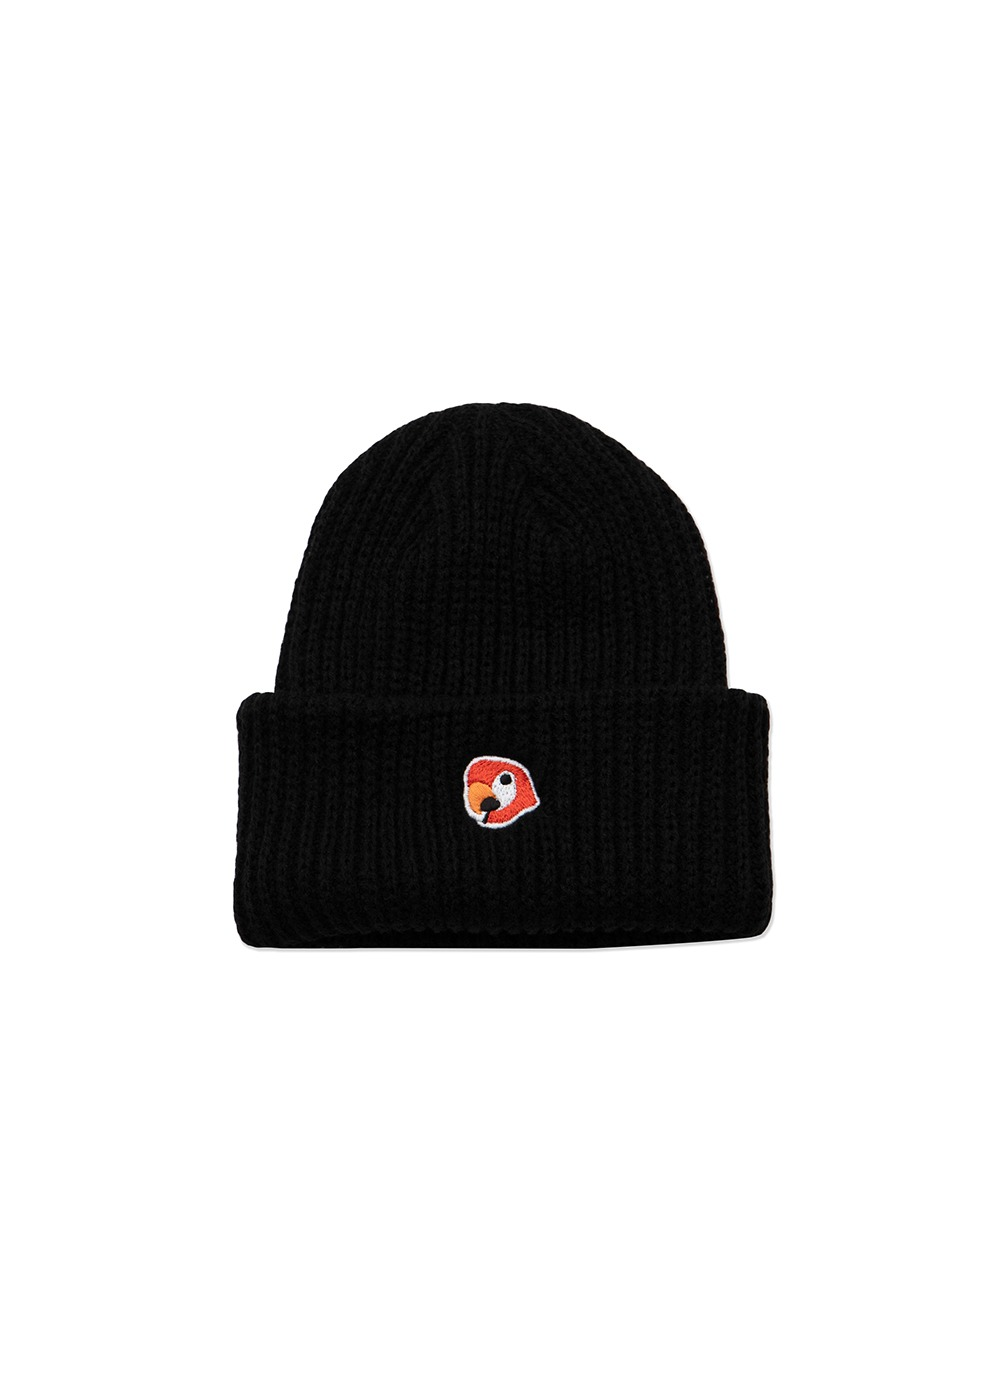 KANCO LOGO SHORT BEANIE black